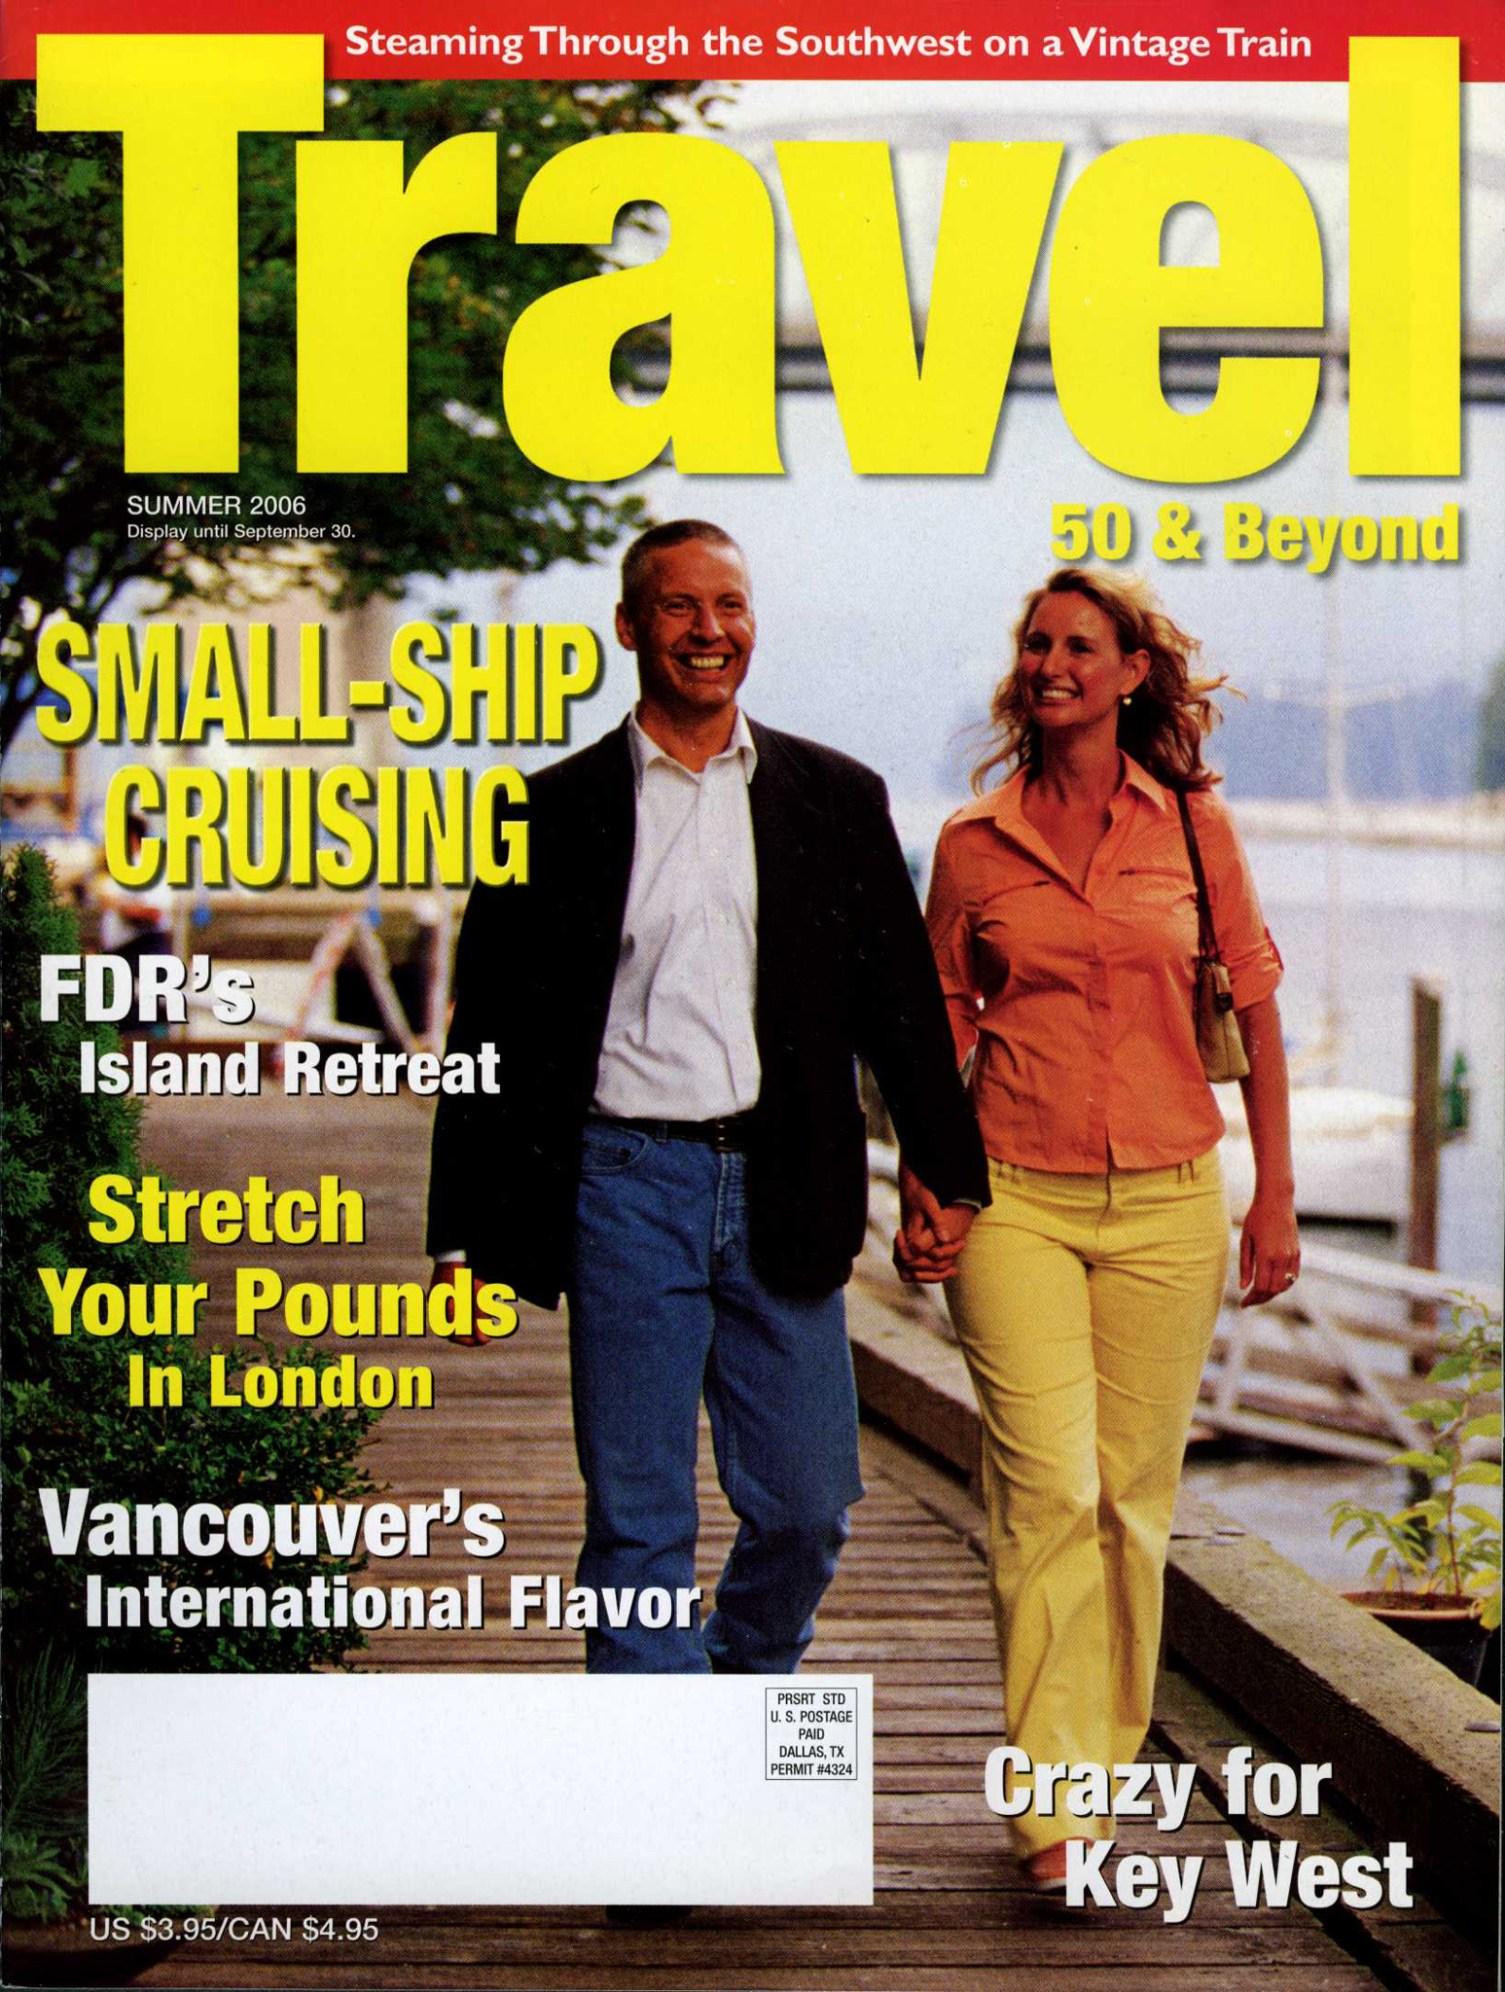 TFB_COVER_Summer 2006_Small-Ship Cruising